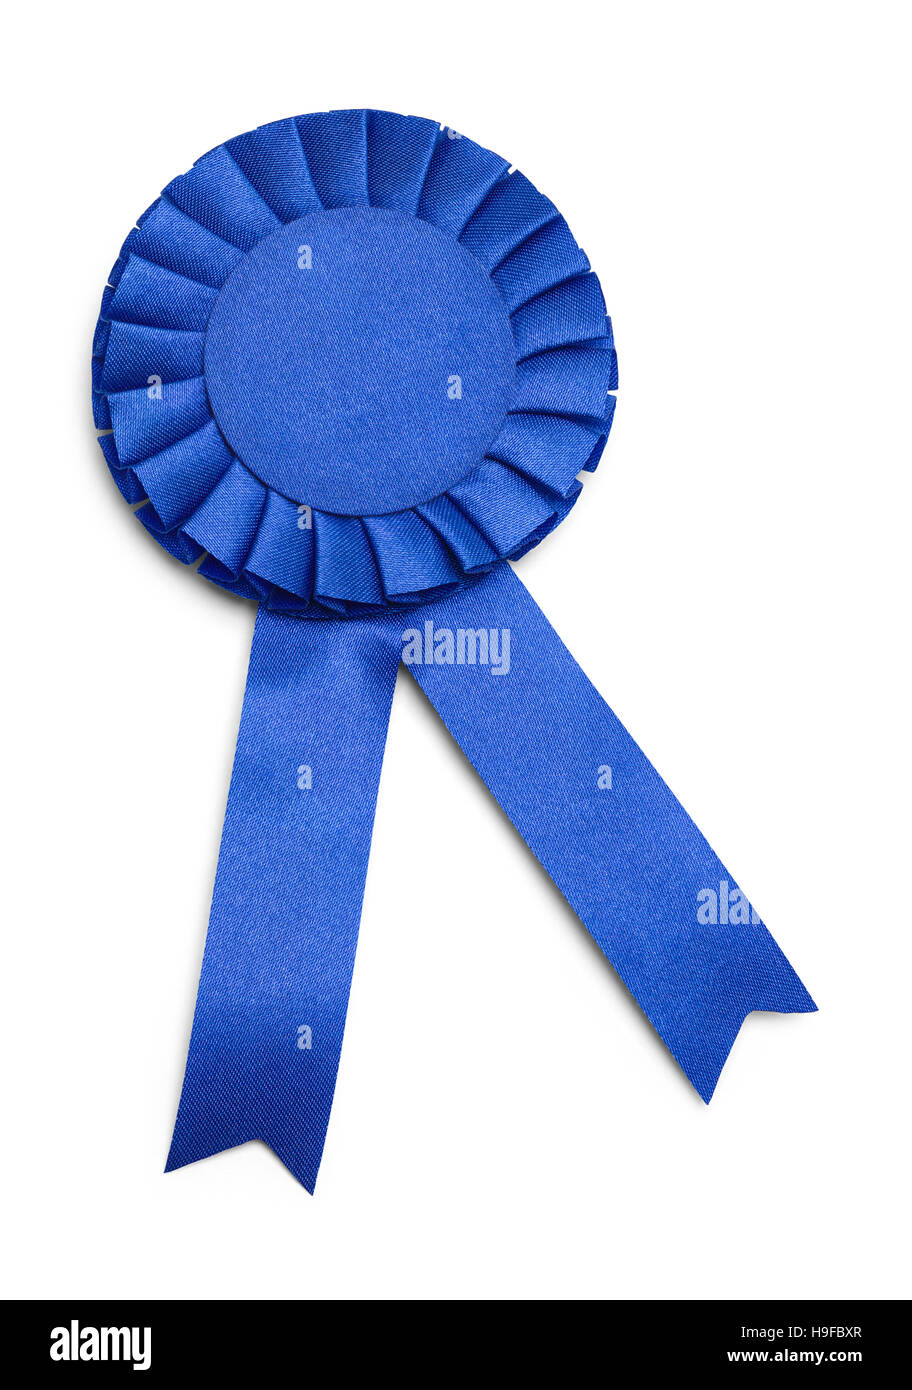 Blue Award Ribbon with Copy Space  Isolated on White Background. - Stock Image